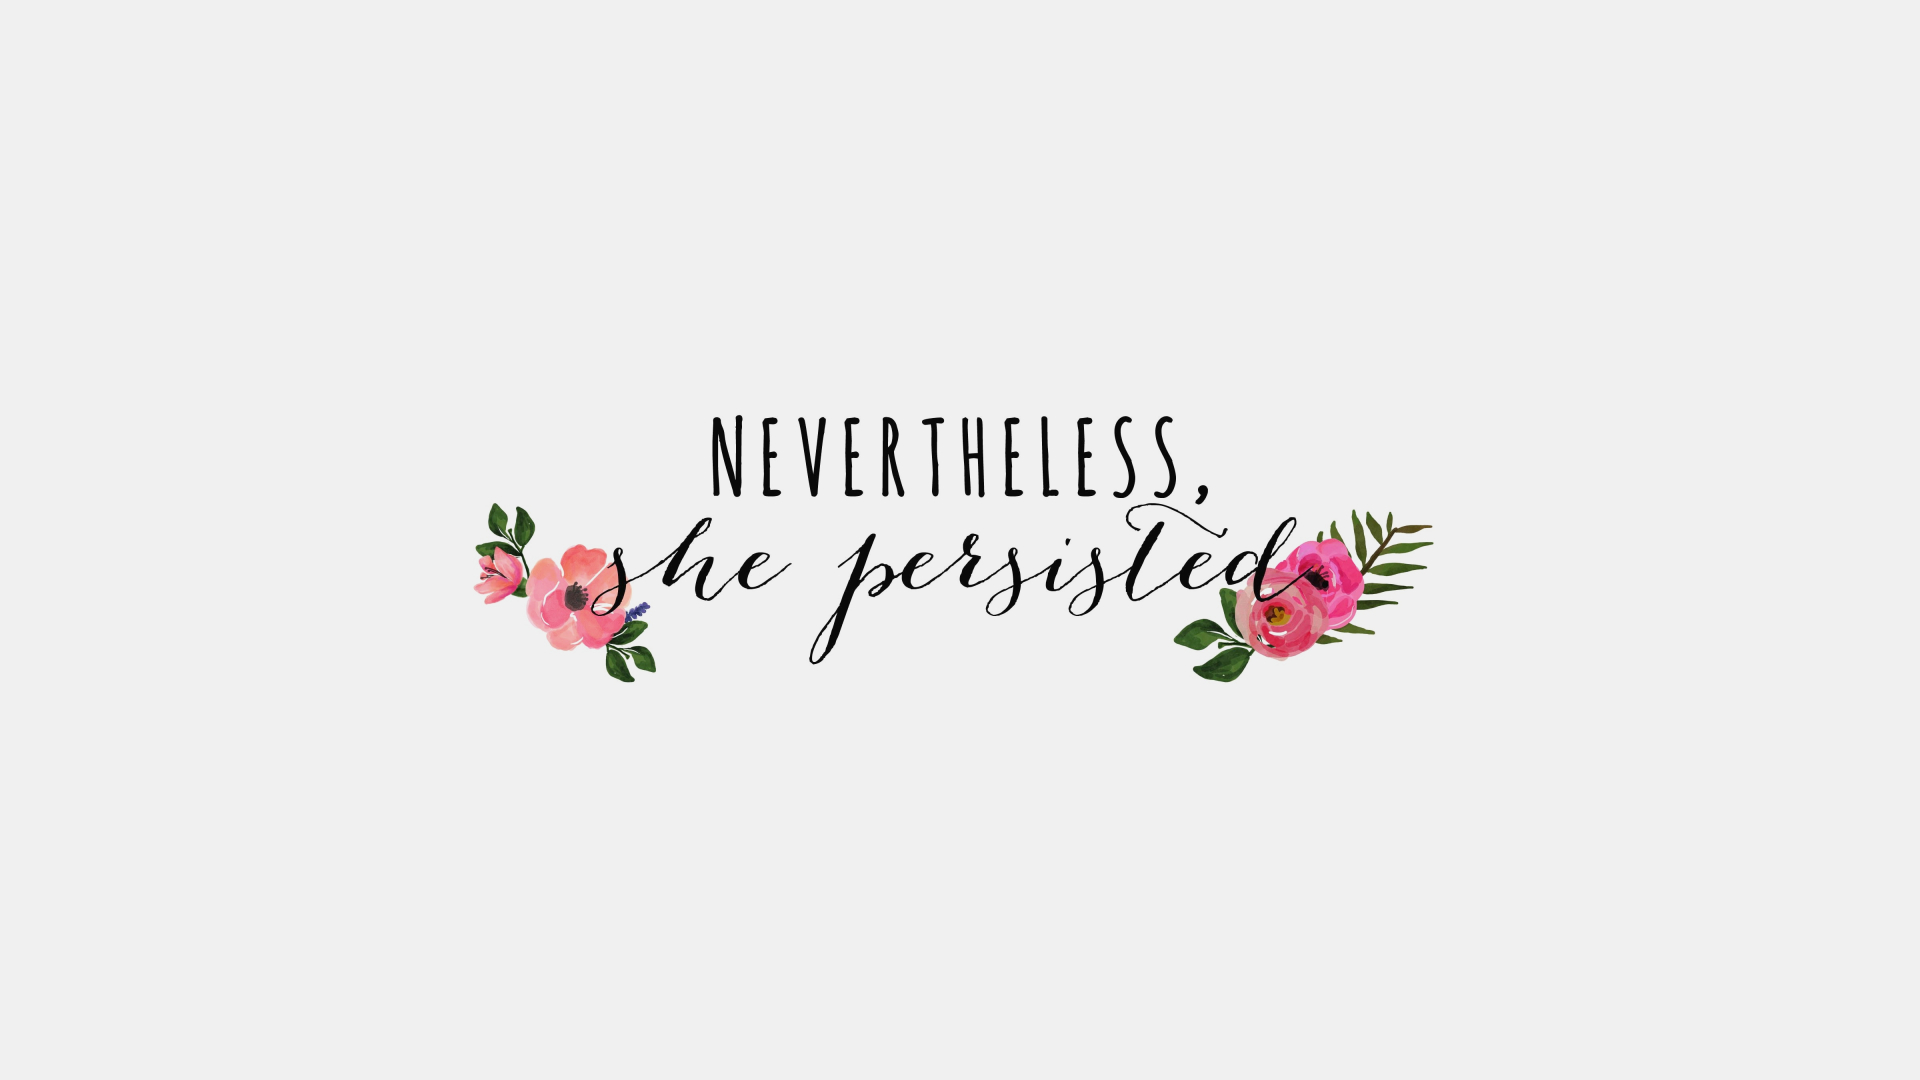 Free Download Images Background Pink Aesthetic Wallpapers Quotes Www 4800x2700 For Your Desktop Mobile Tablet Explore 22 Pink Aesthetic Wallpapers Pink Aesthetic Wallpapers Aesthetic Wallpaper Aesthetic Wallpapers